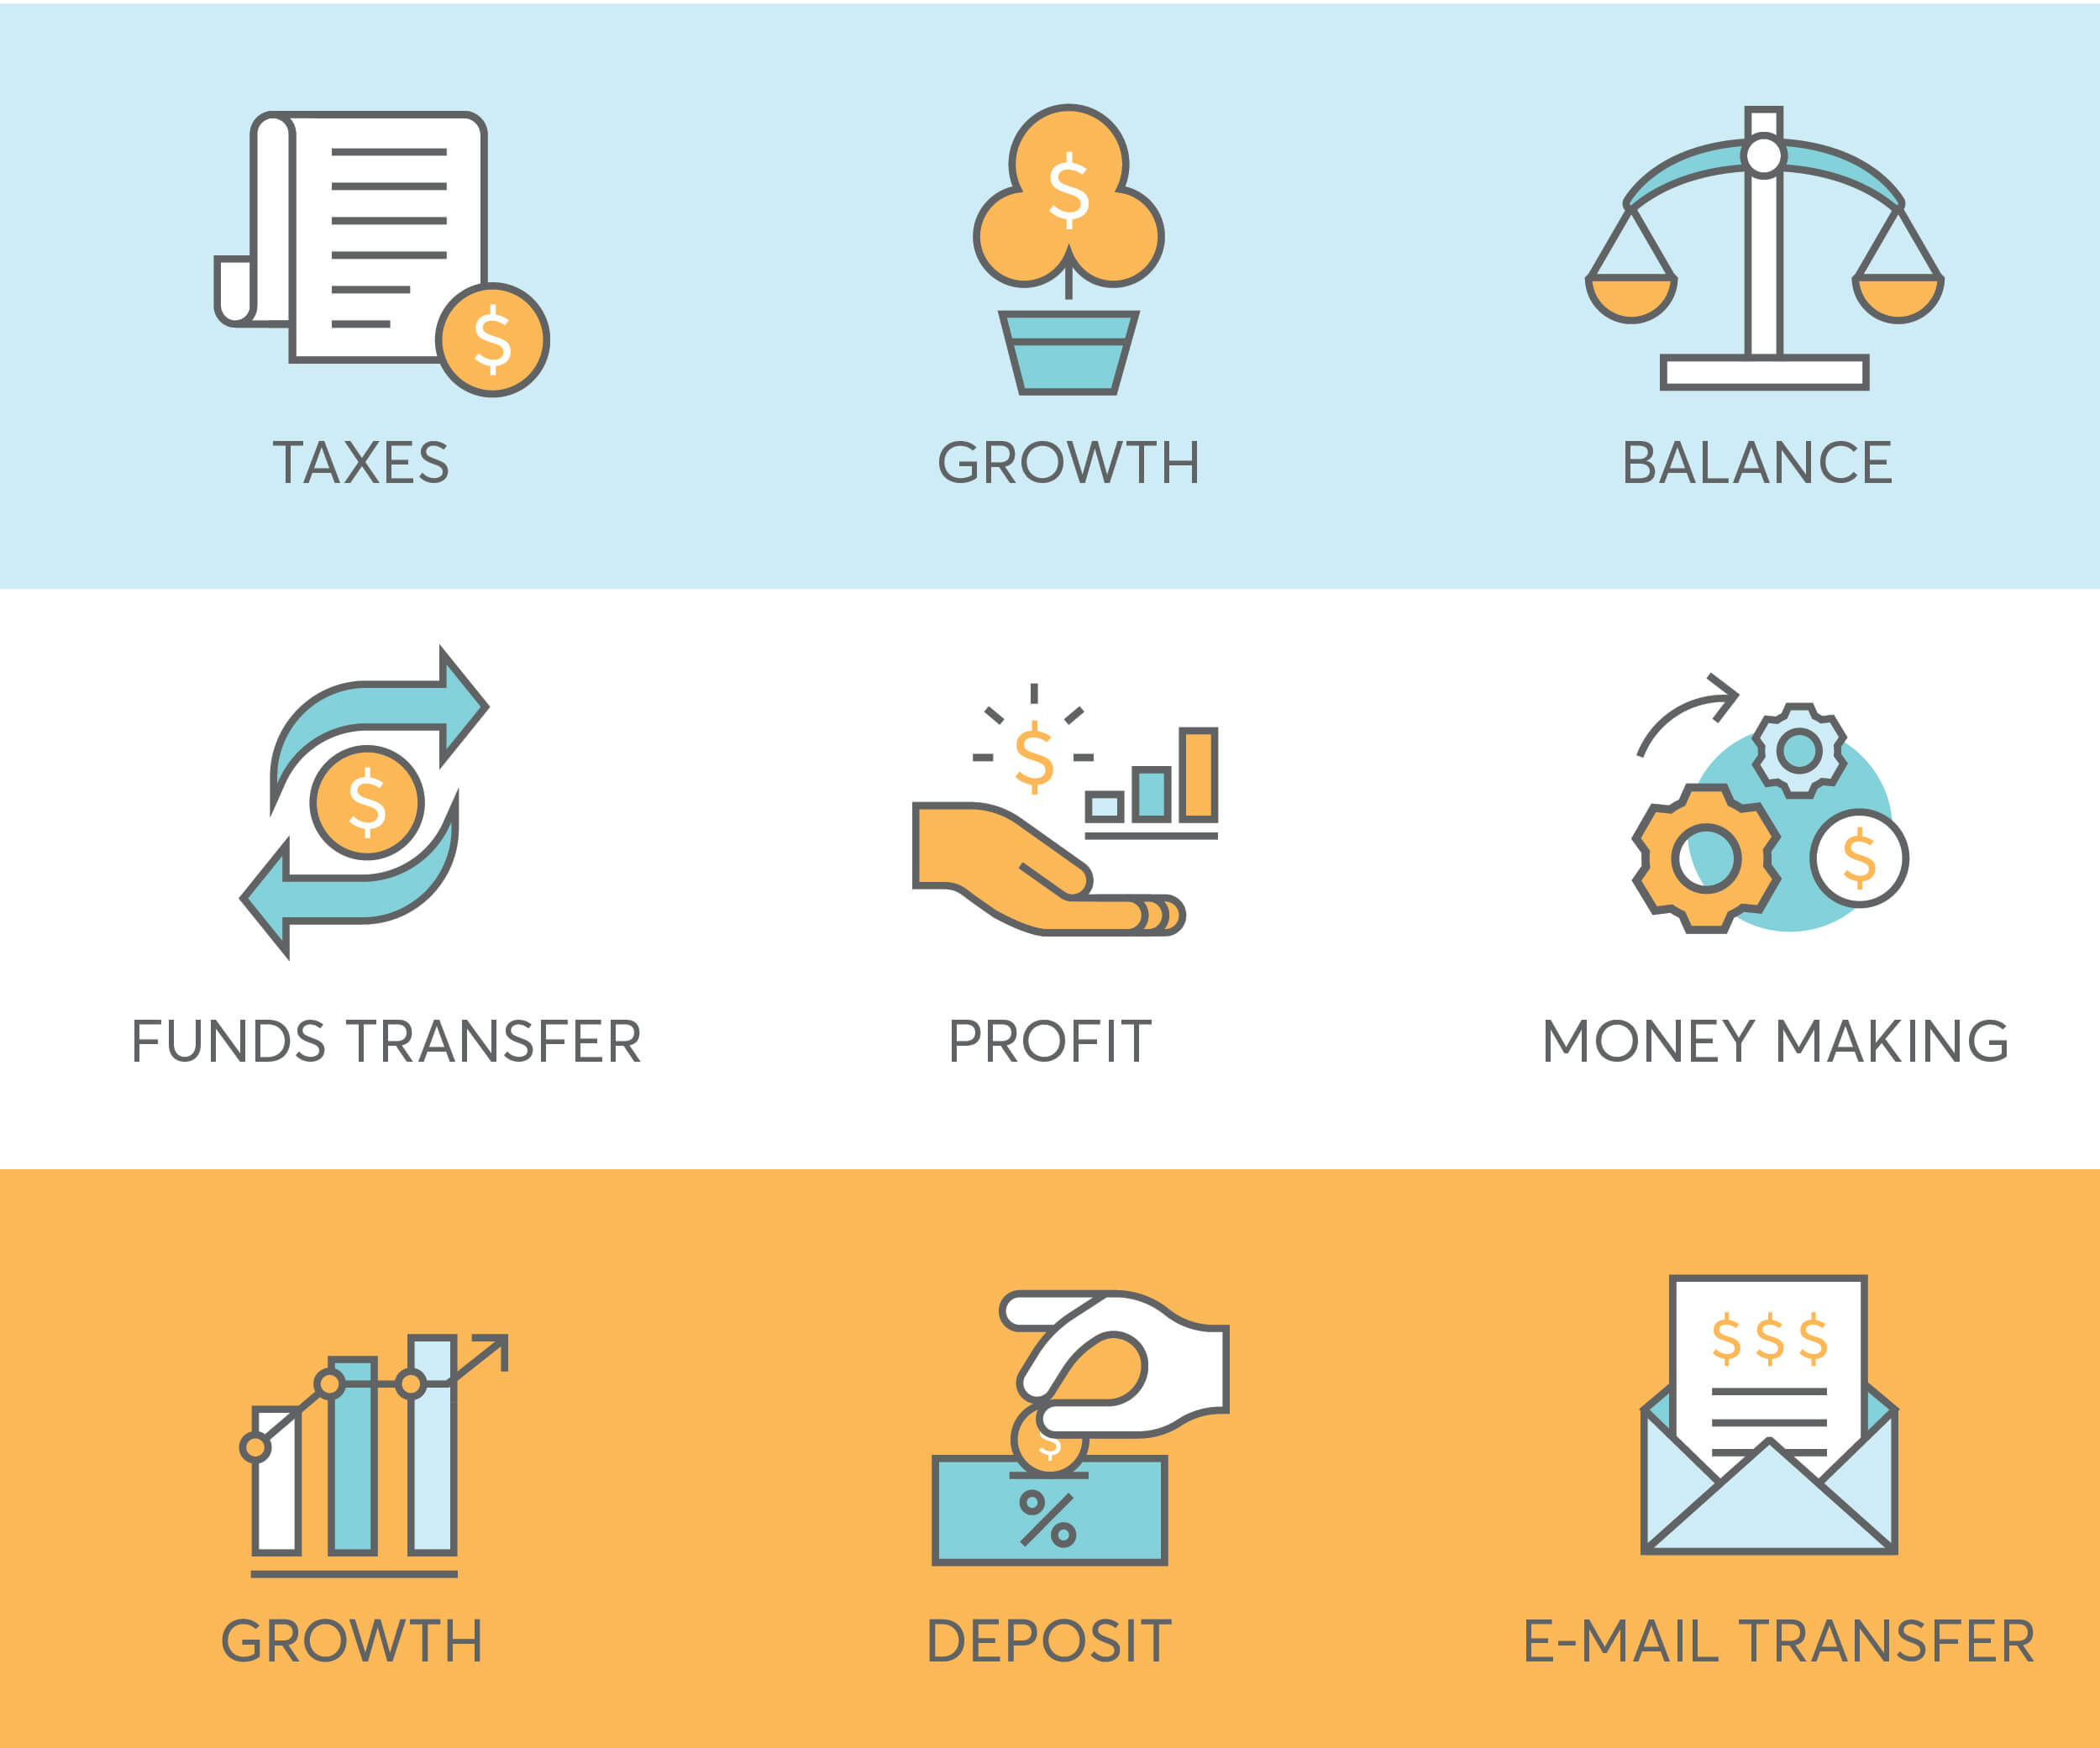 9 finance icons for fintech startup such as tax, profit, depost